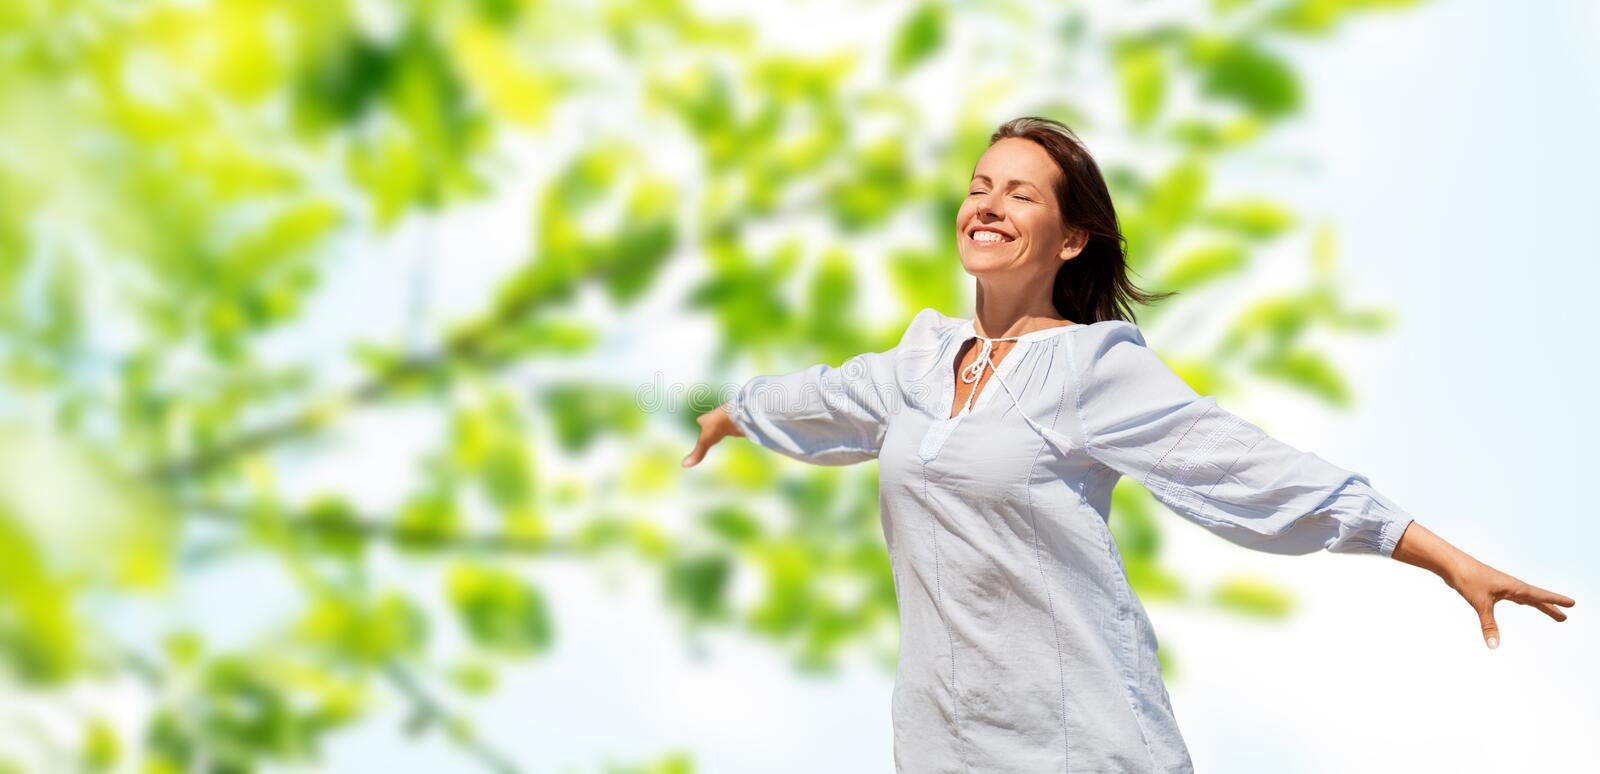 Happy smiling woman over green natural background royalty free stock photo